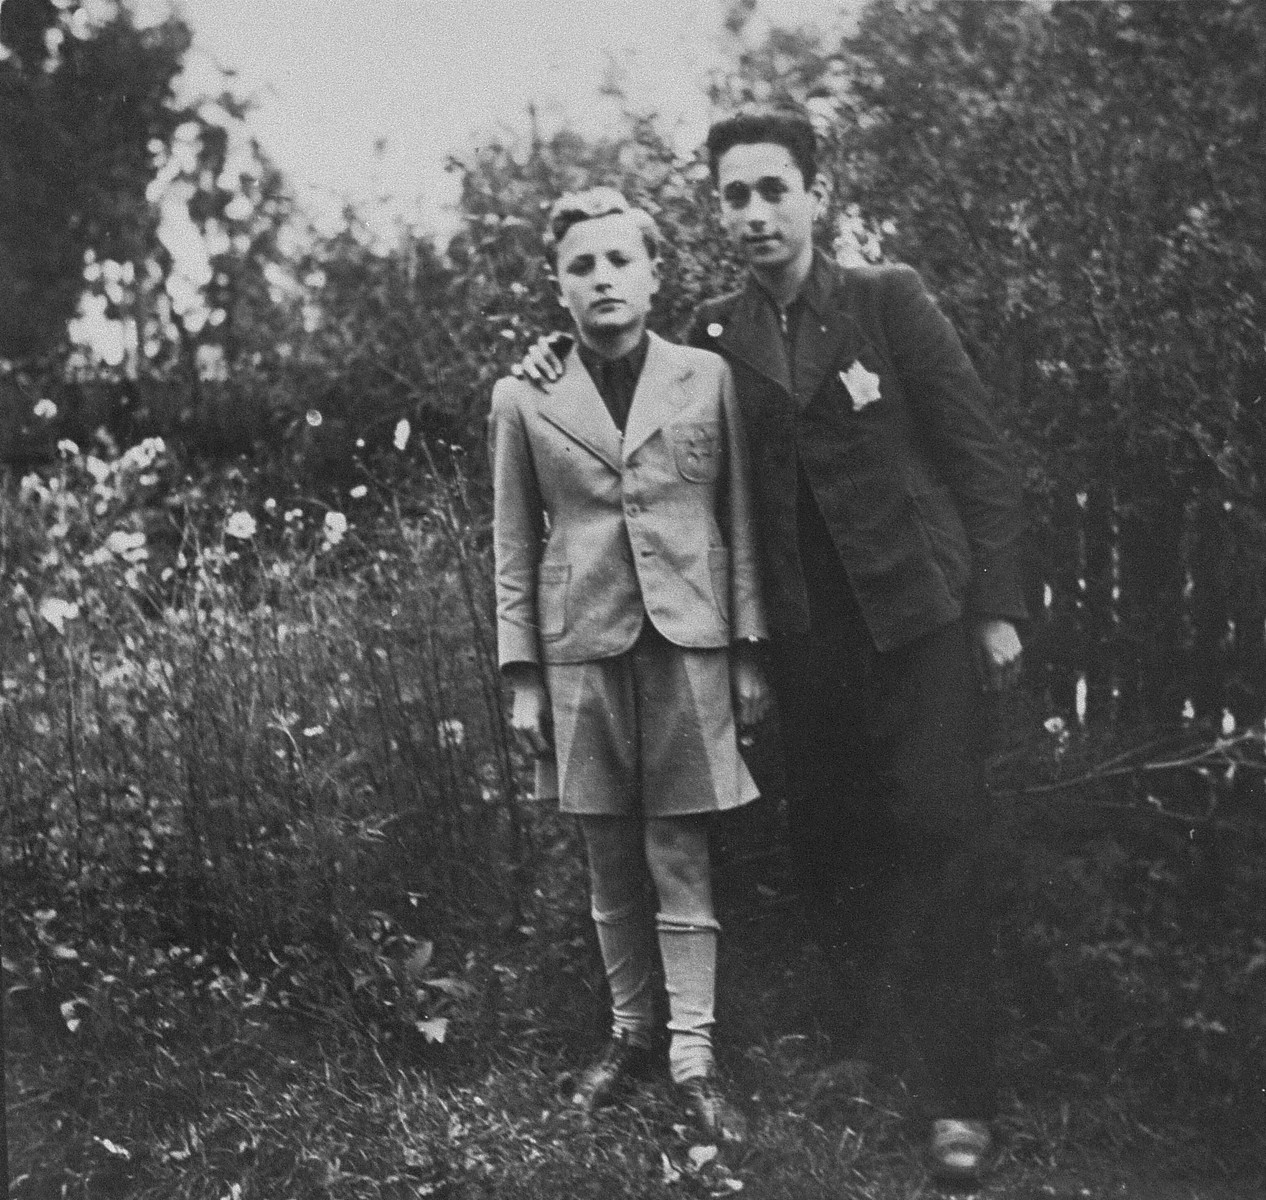 Two members of the Irgun Brit Zion Zionist youth movement in the Kovno ghetto.  Pictured are Bobi Blumberg (left) and Shalom Jatkunsky (right).